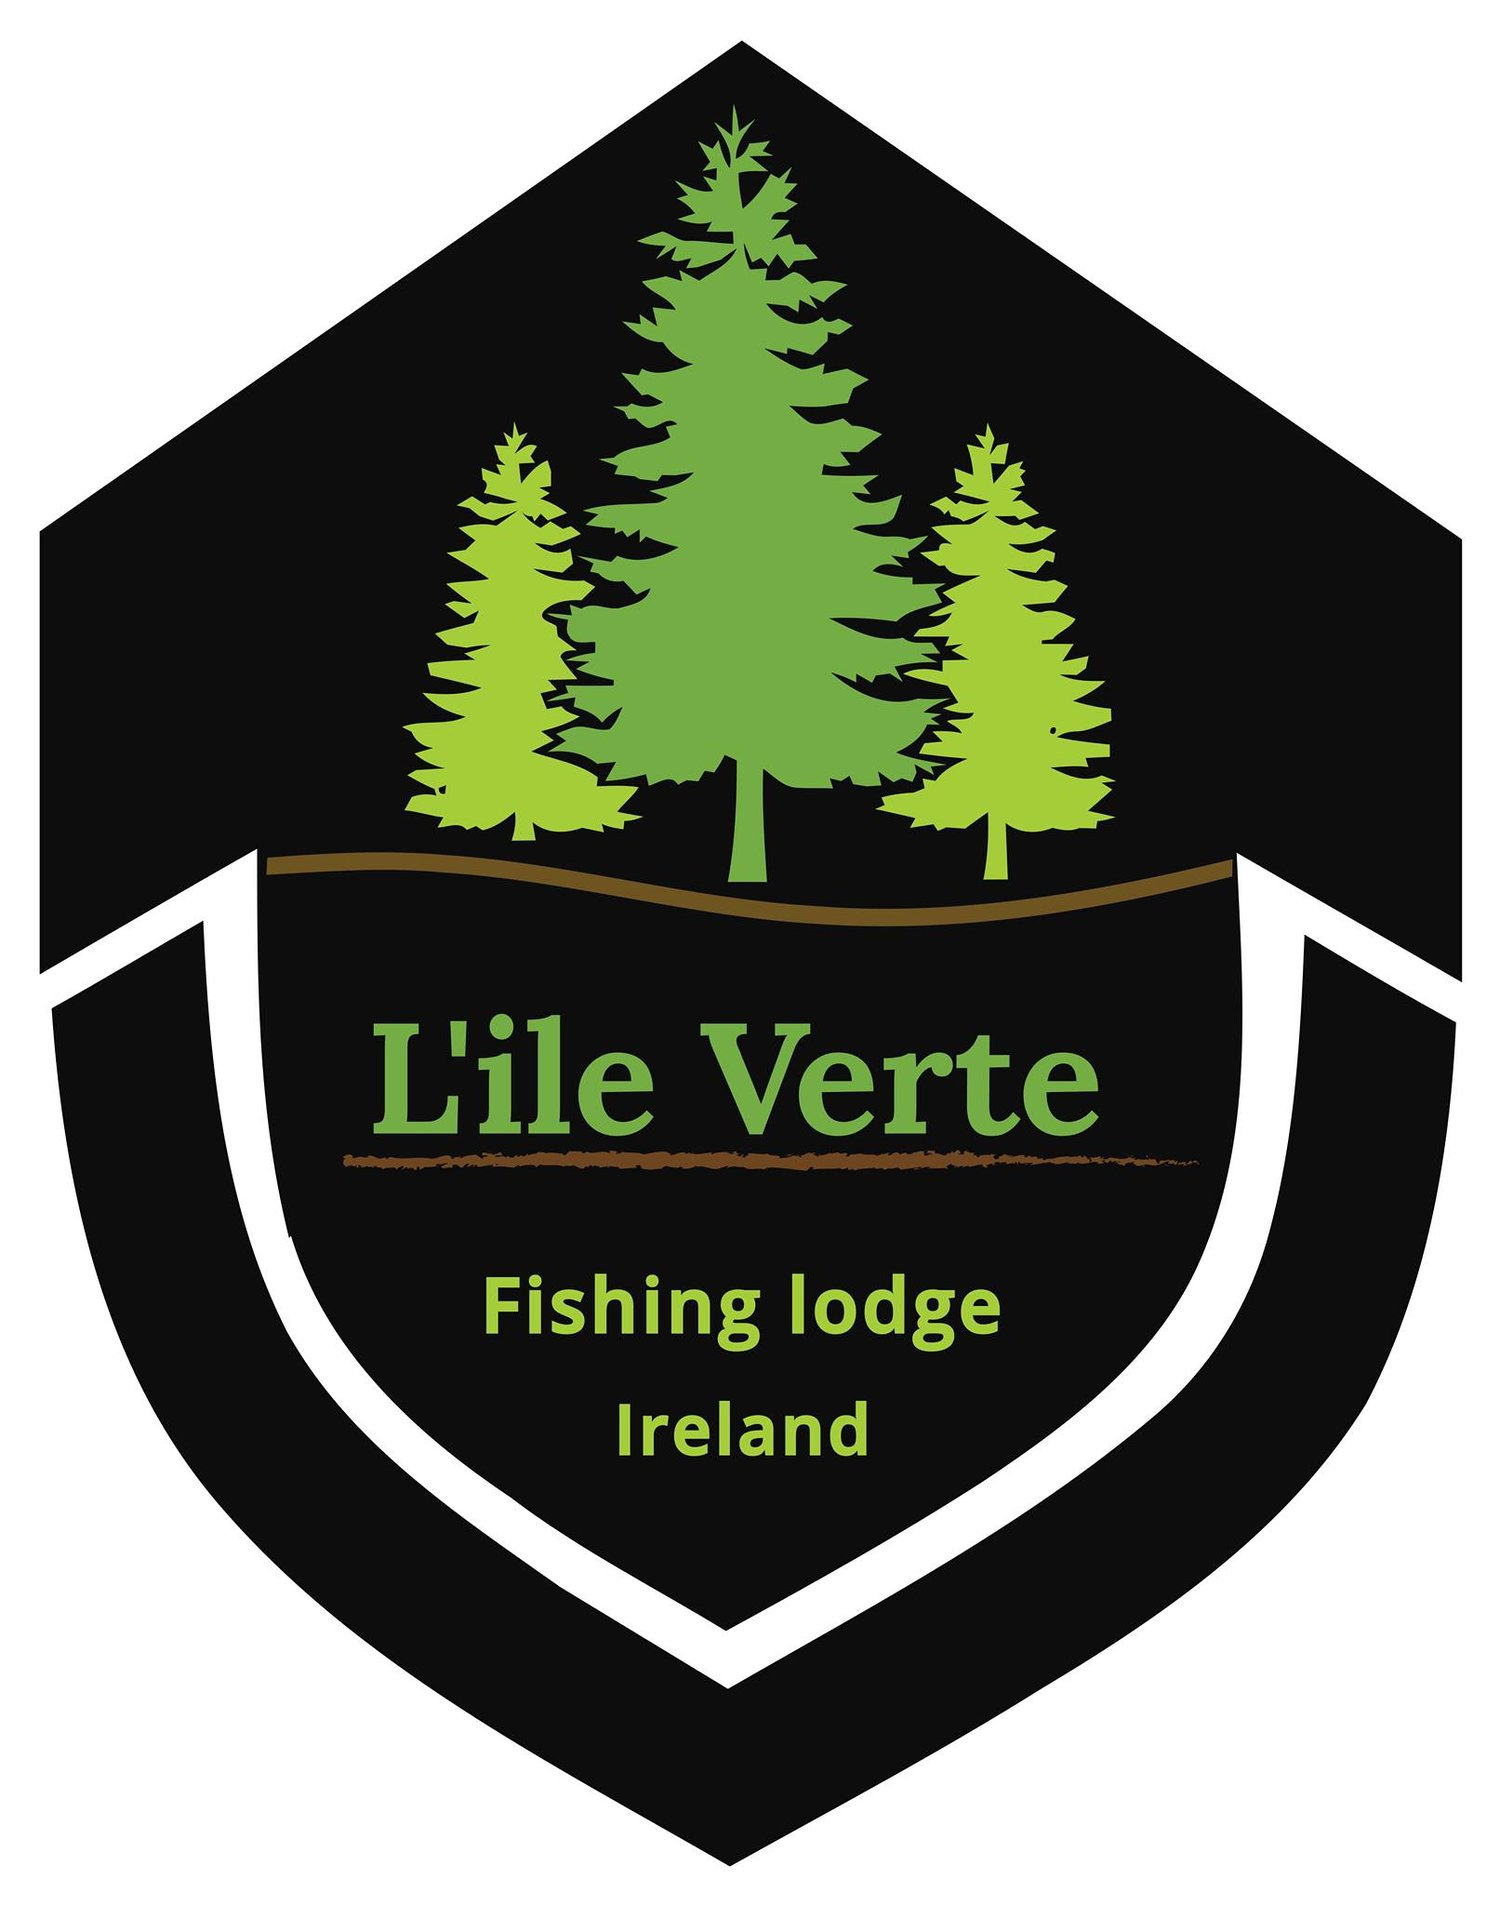 Ile verte Fishing Lodge